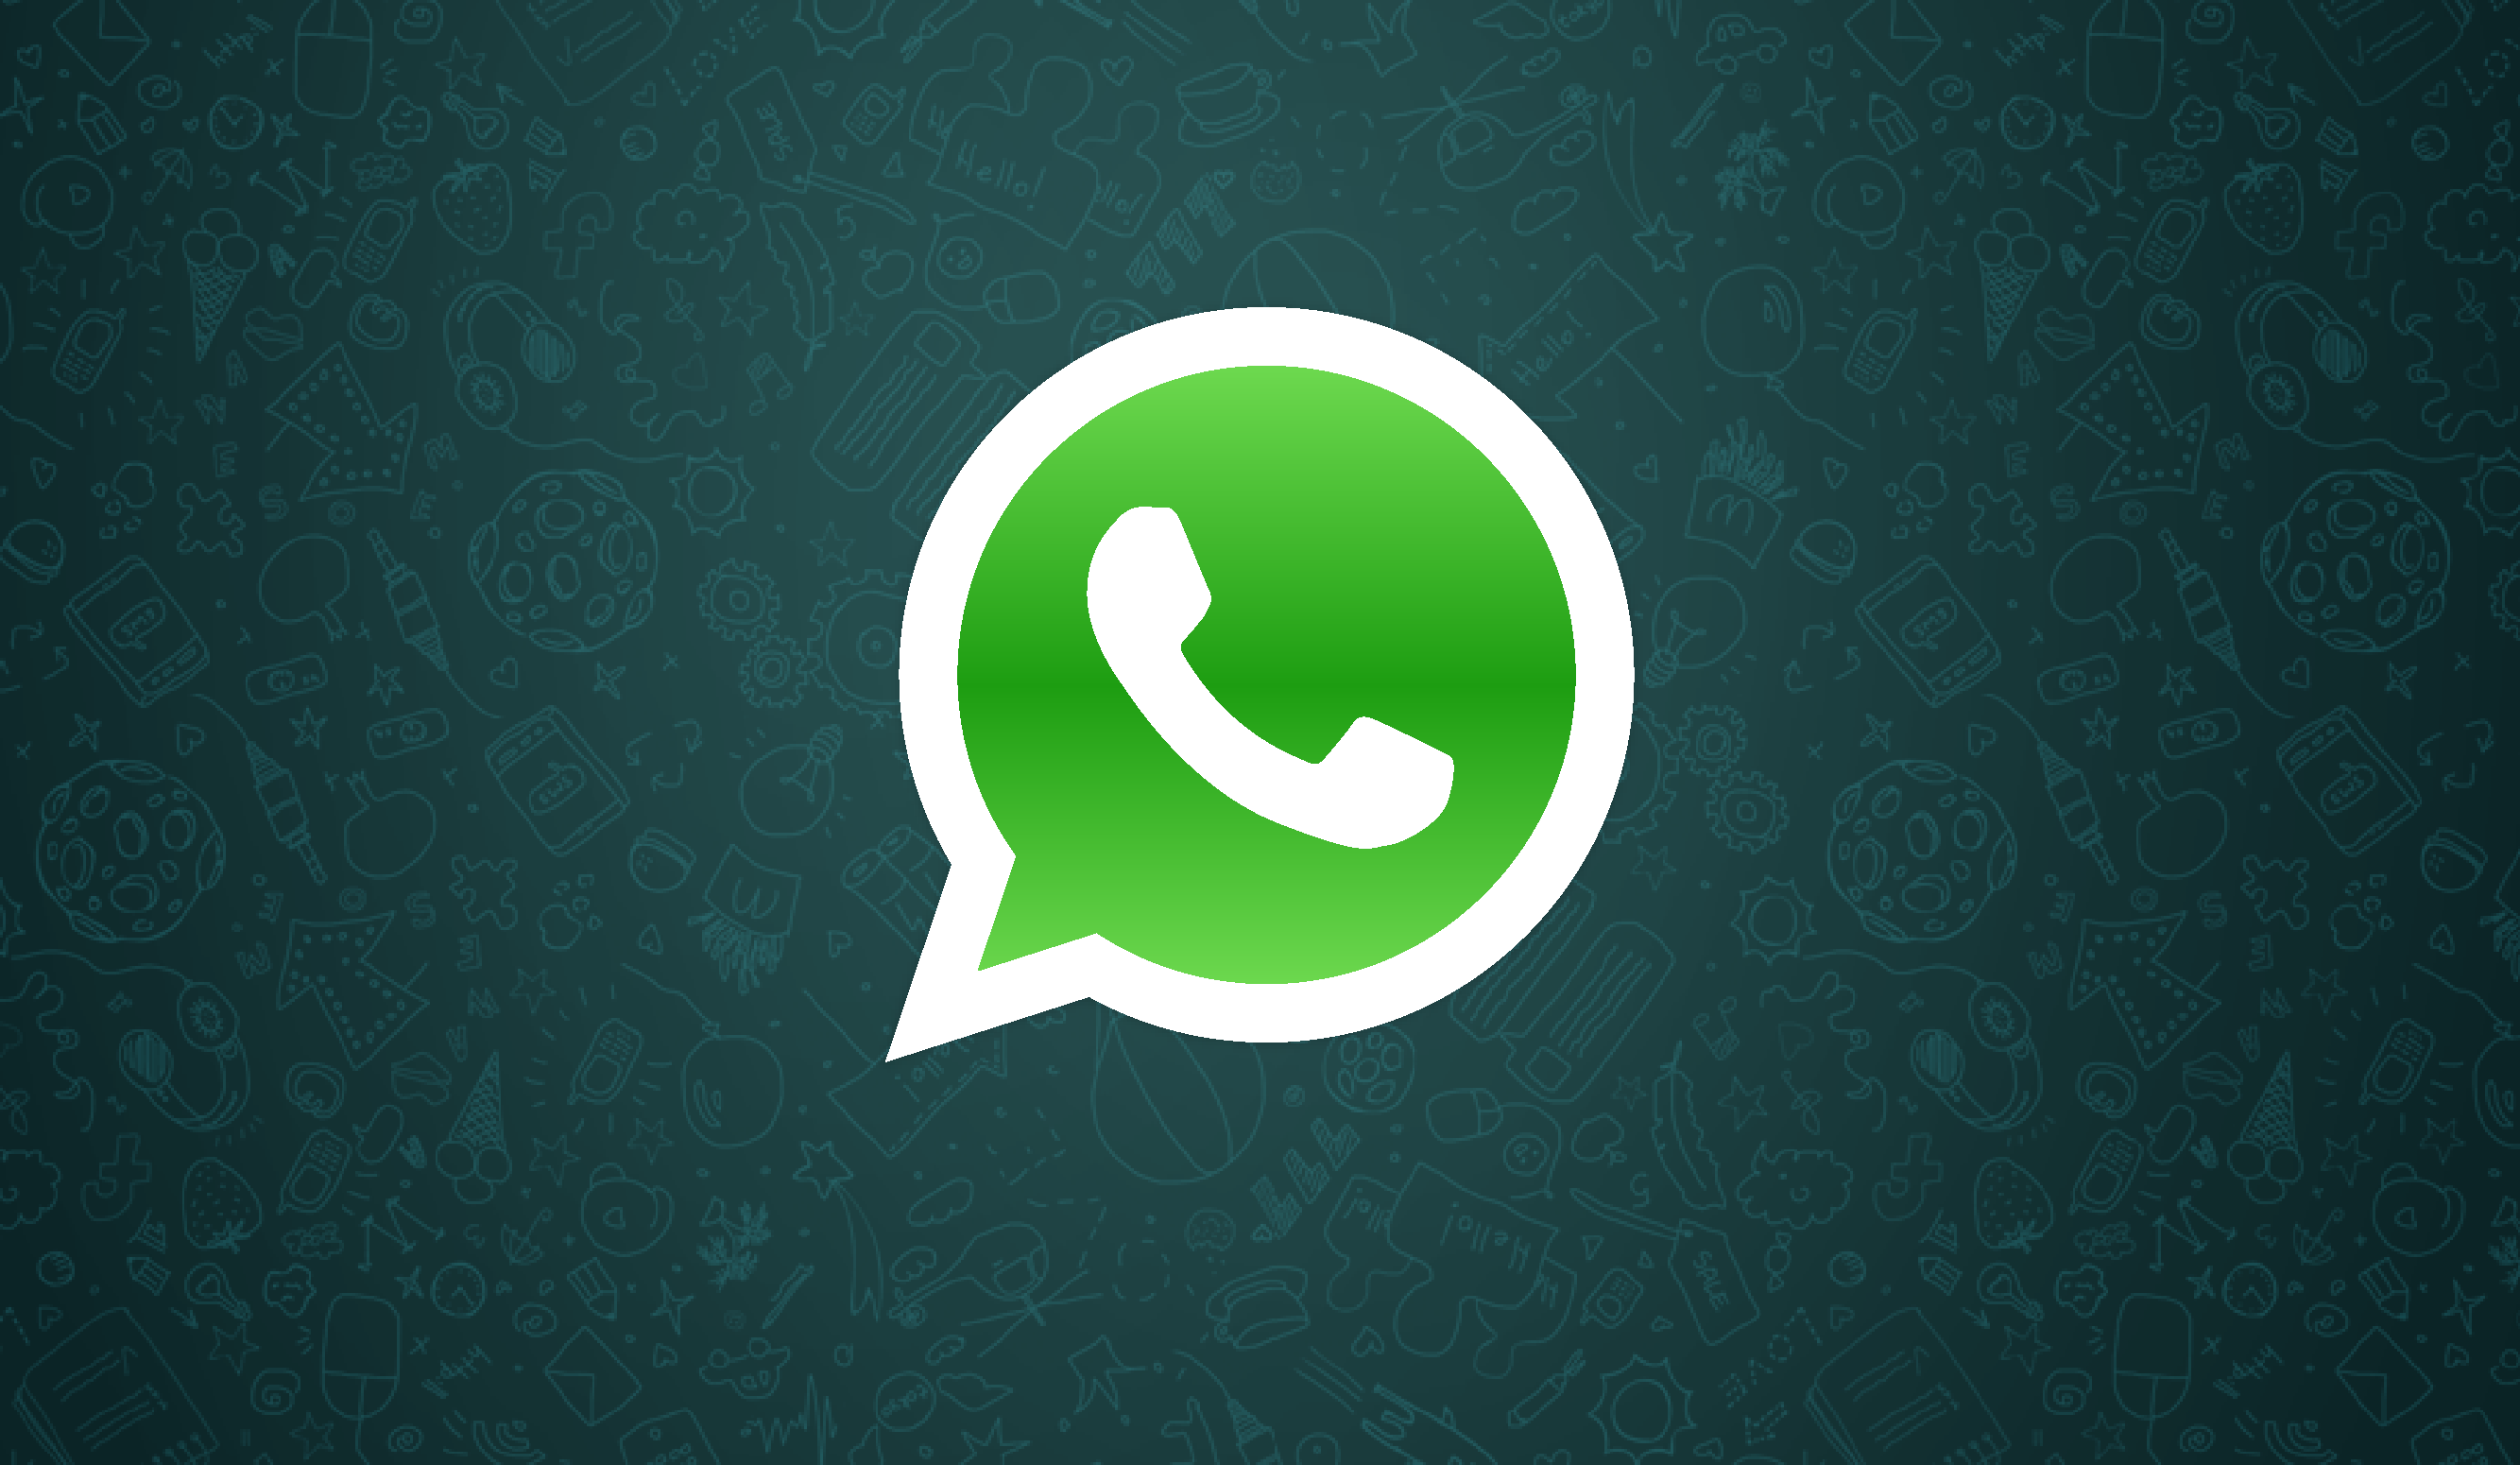 WhatsApp Surpassed 1 Billion Downloads On Android